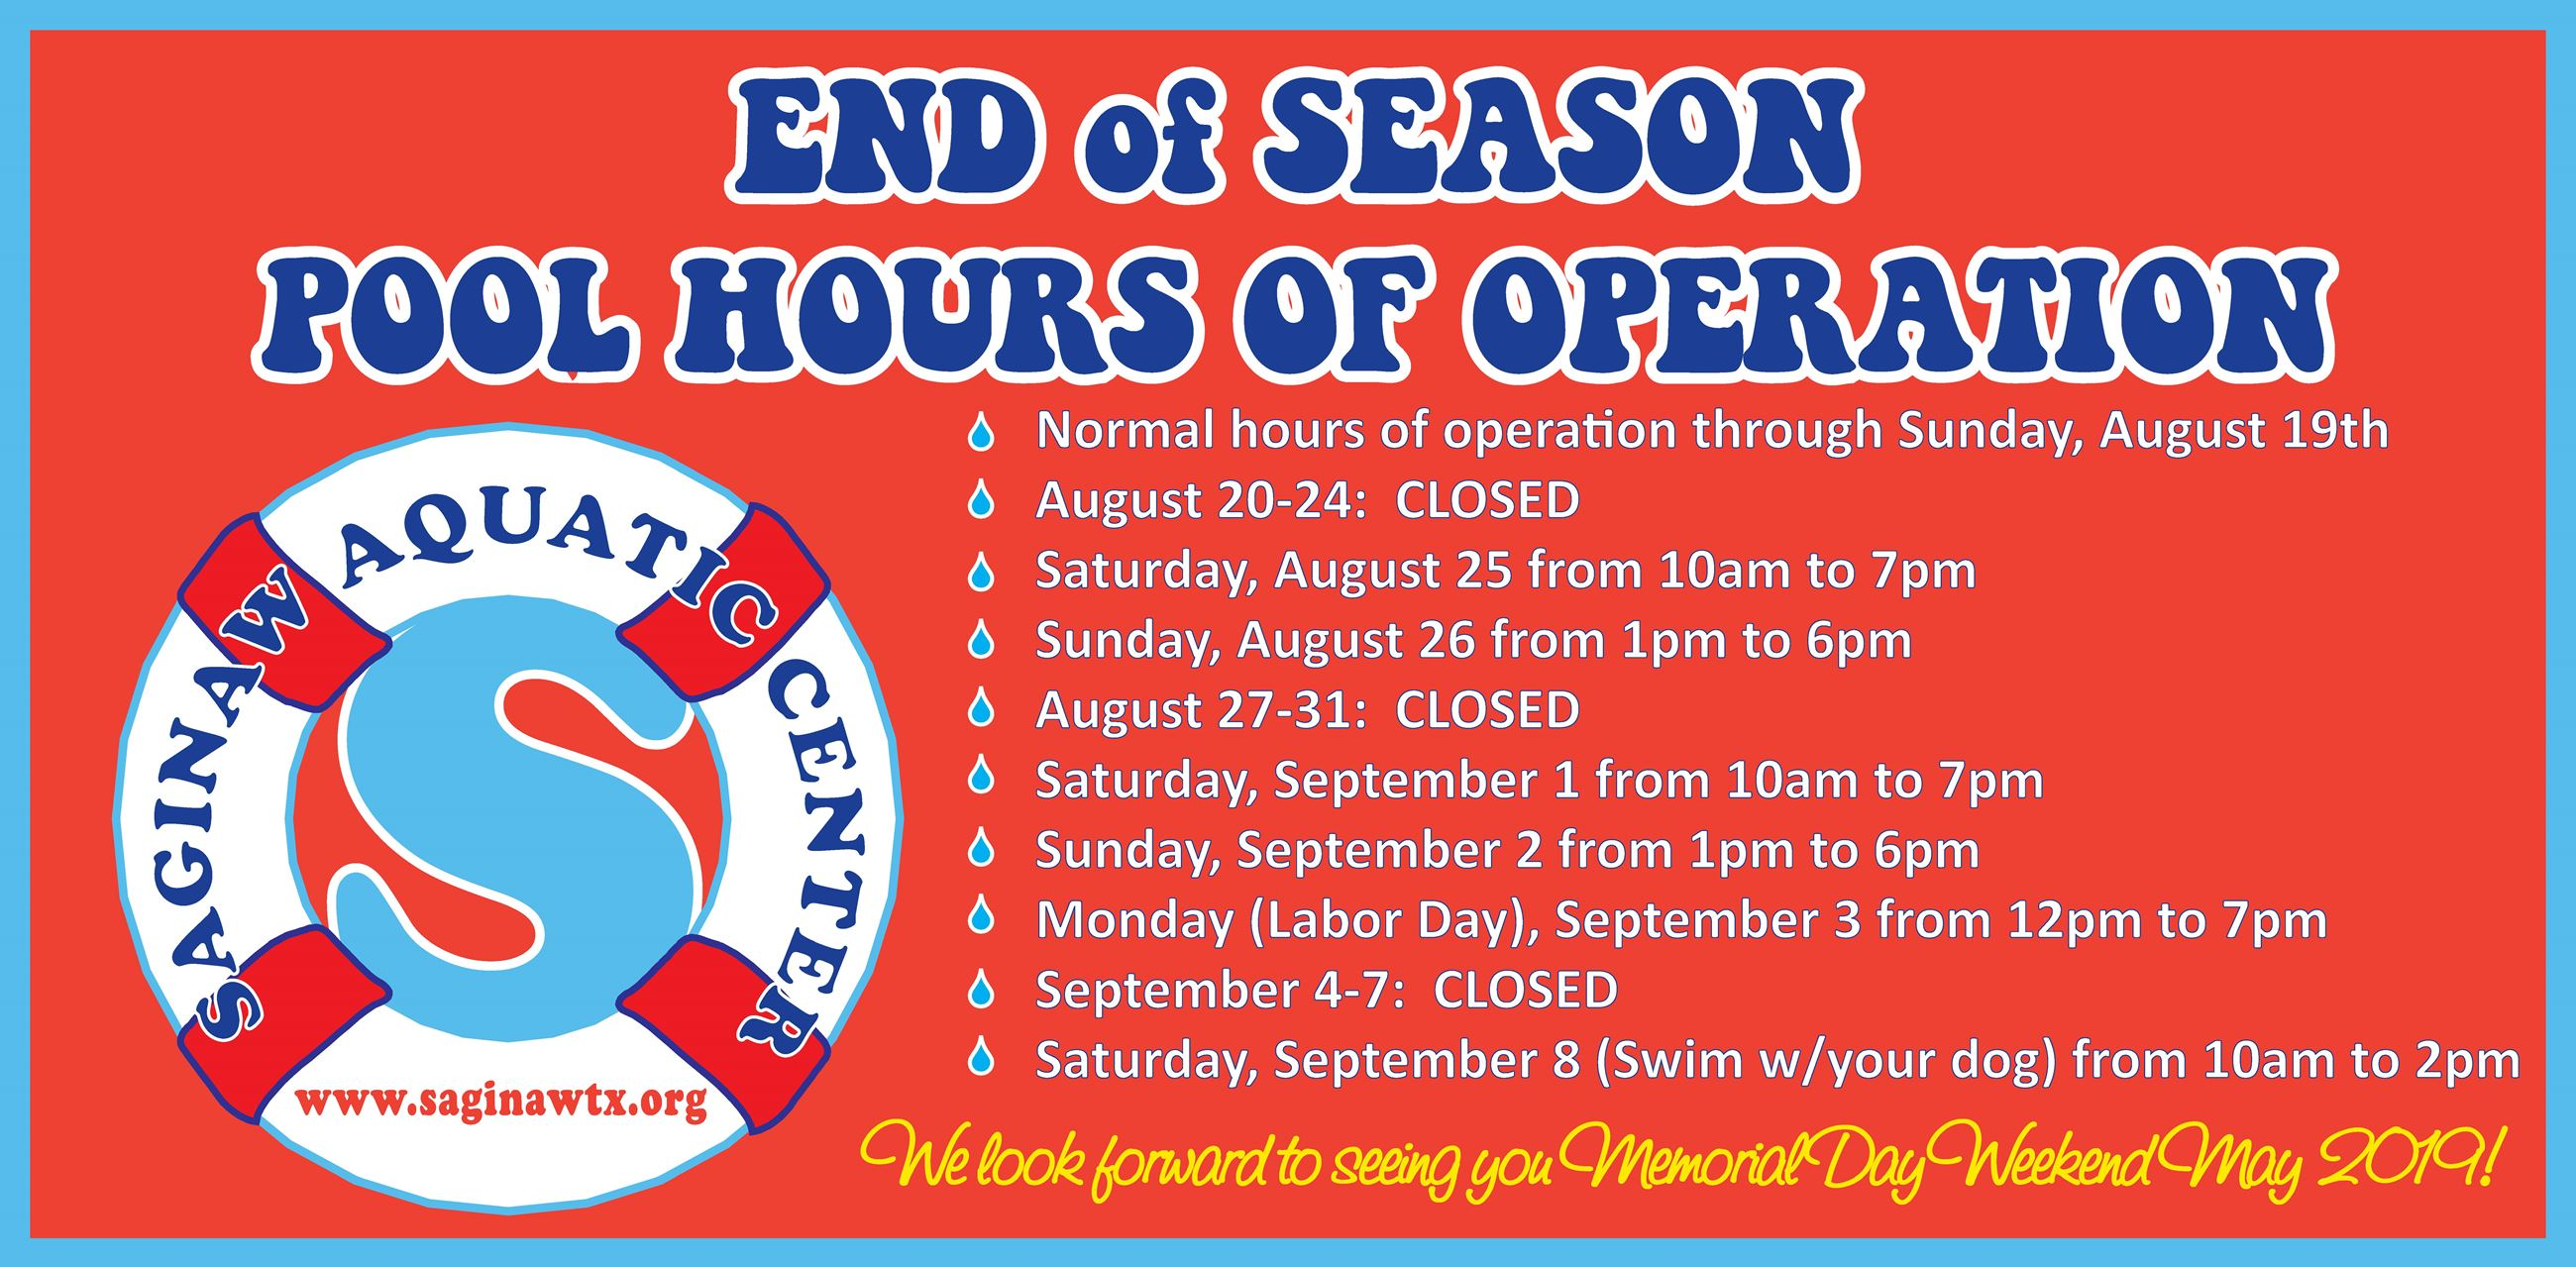 End of Season Hours of Operation